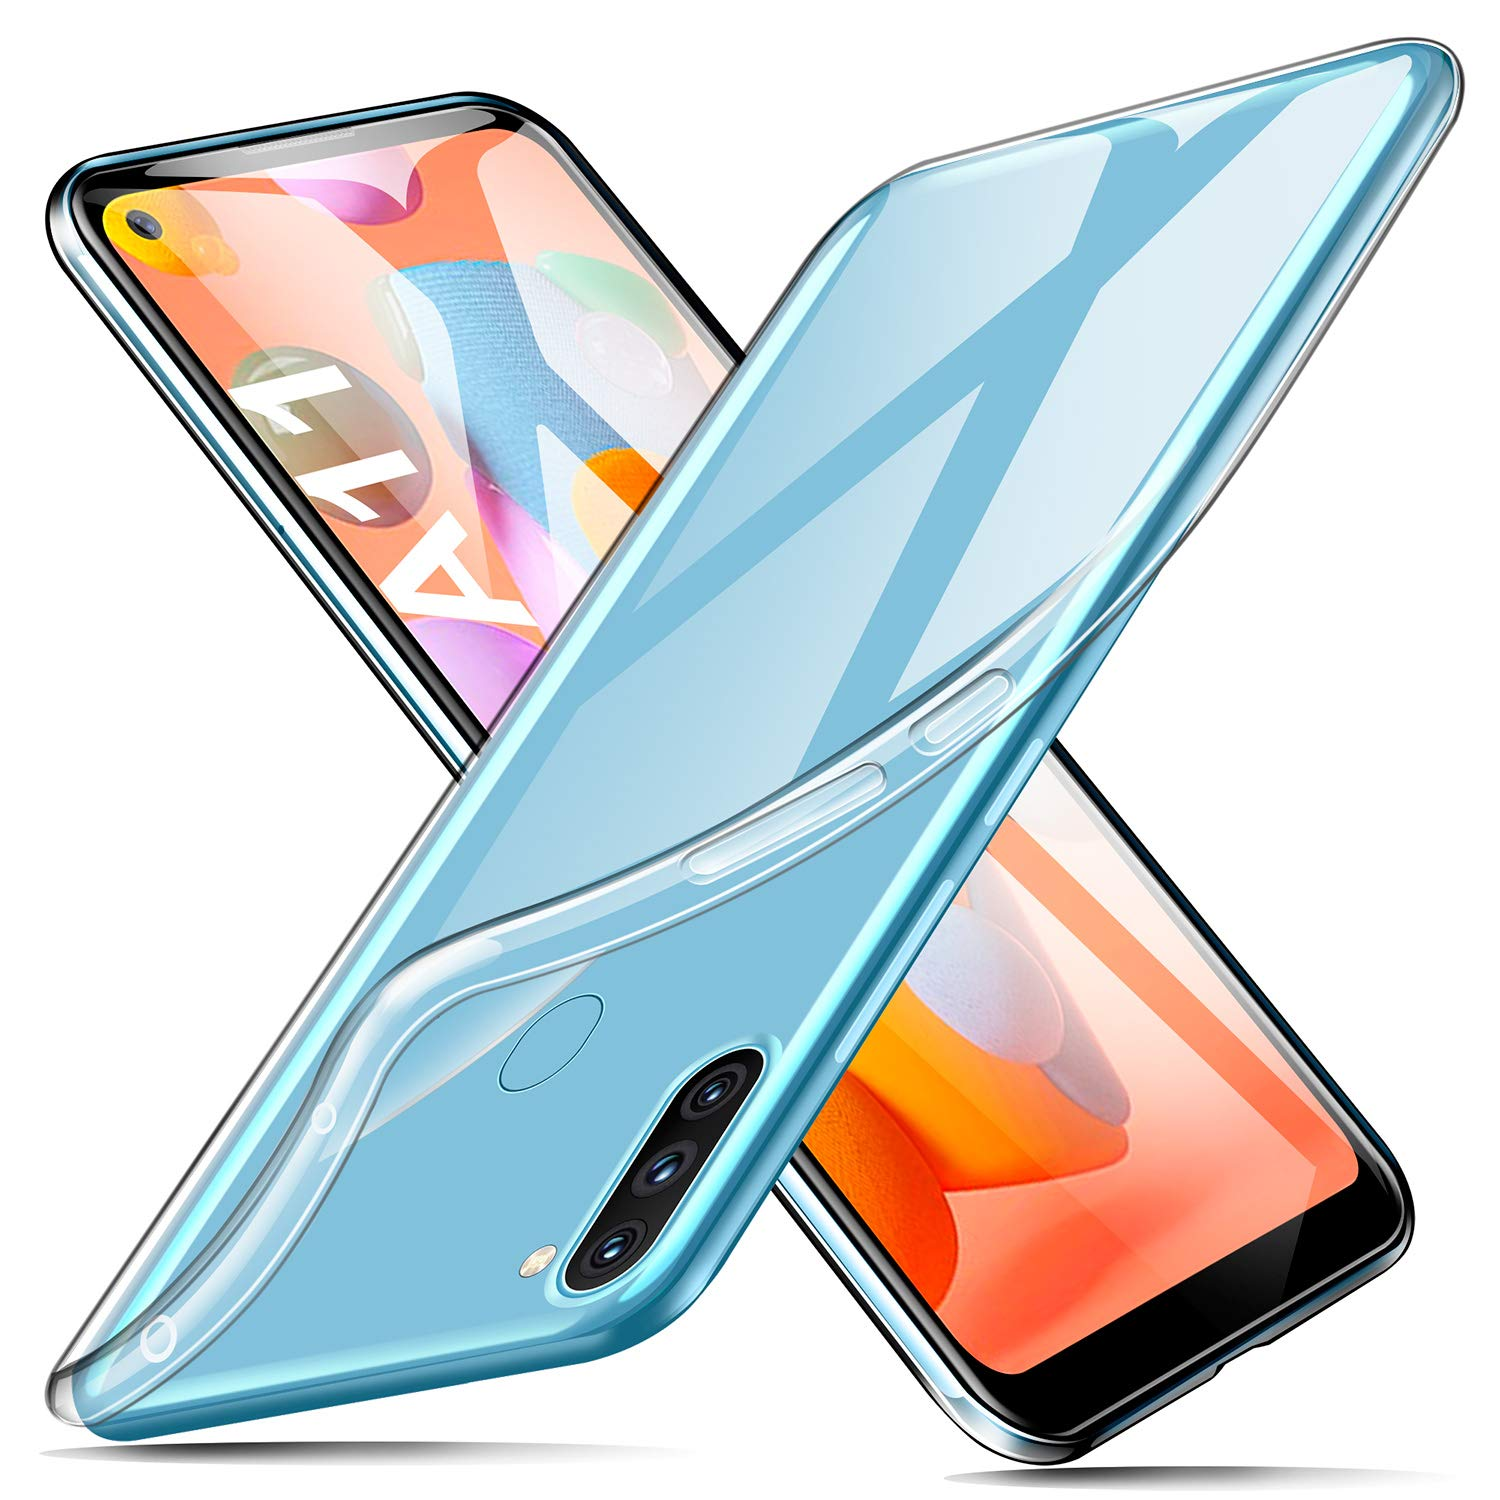 ivencase for Samsung Galaxy A11 Case, Slim Soft TPU Silicone Clear Case  [Anti-Yellow] [Drop Protection] [Anti-scratch] [Anti-Slip] Transparent Case  Protective Slim Phone Case For Samsung Galaxy A11 - Buy Online in India. |